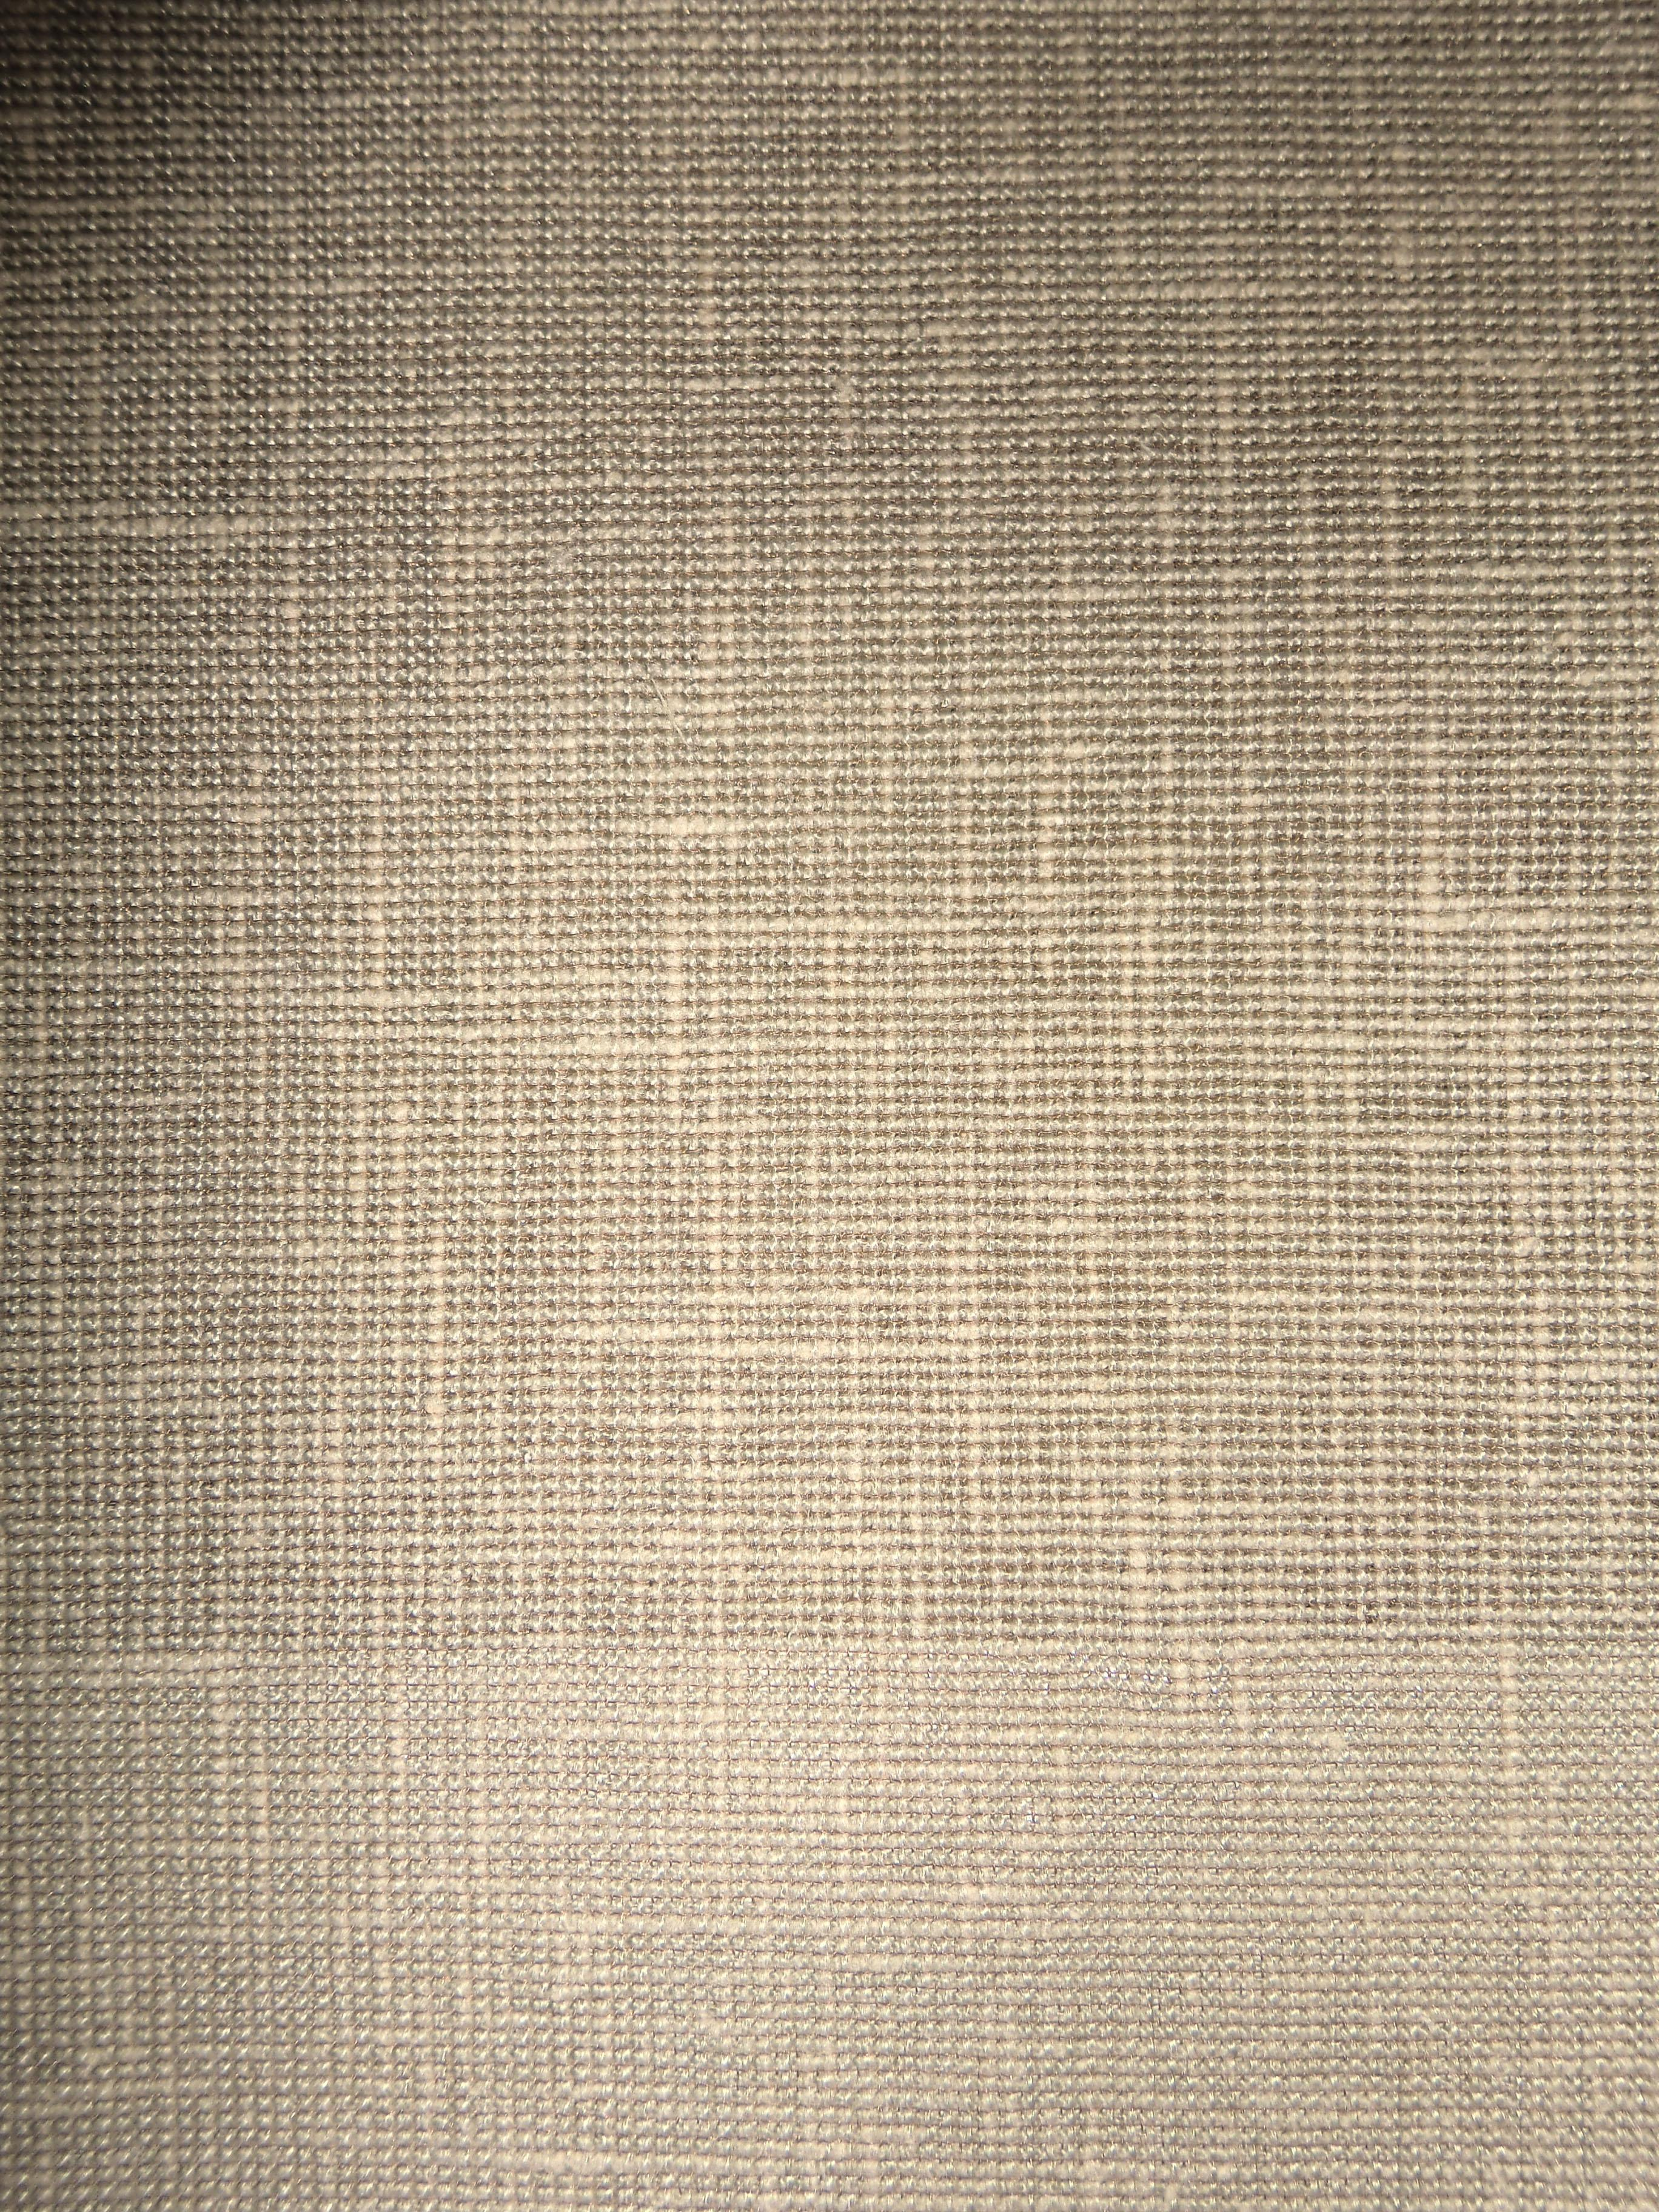 Kay and l fabrics waterloo burlap for What is burlap material